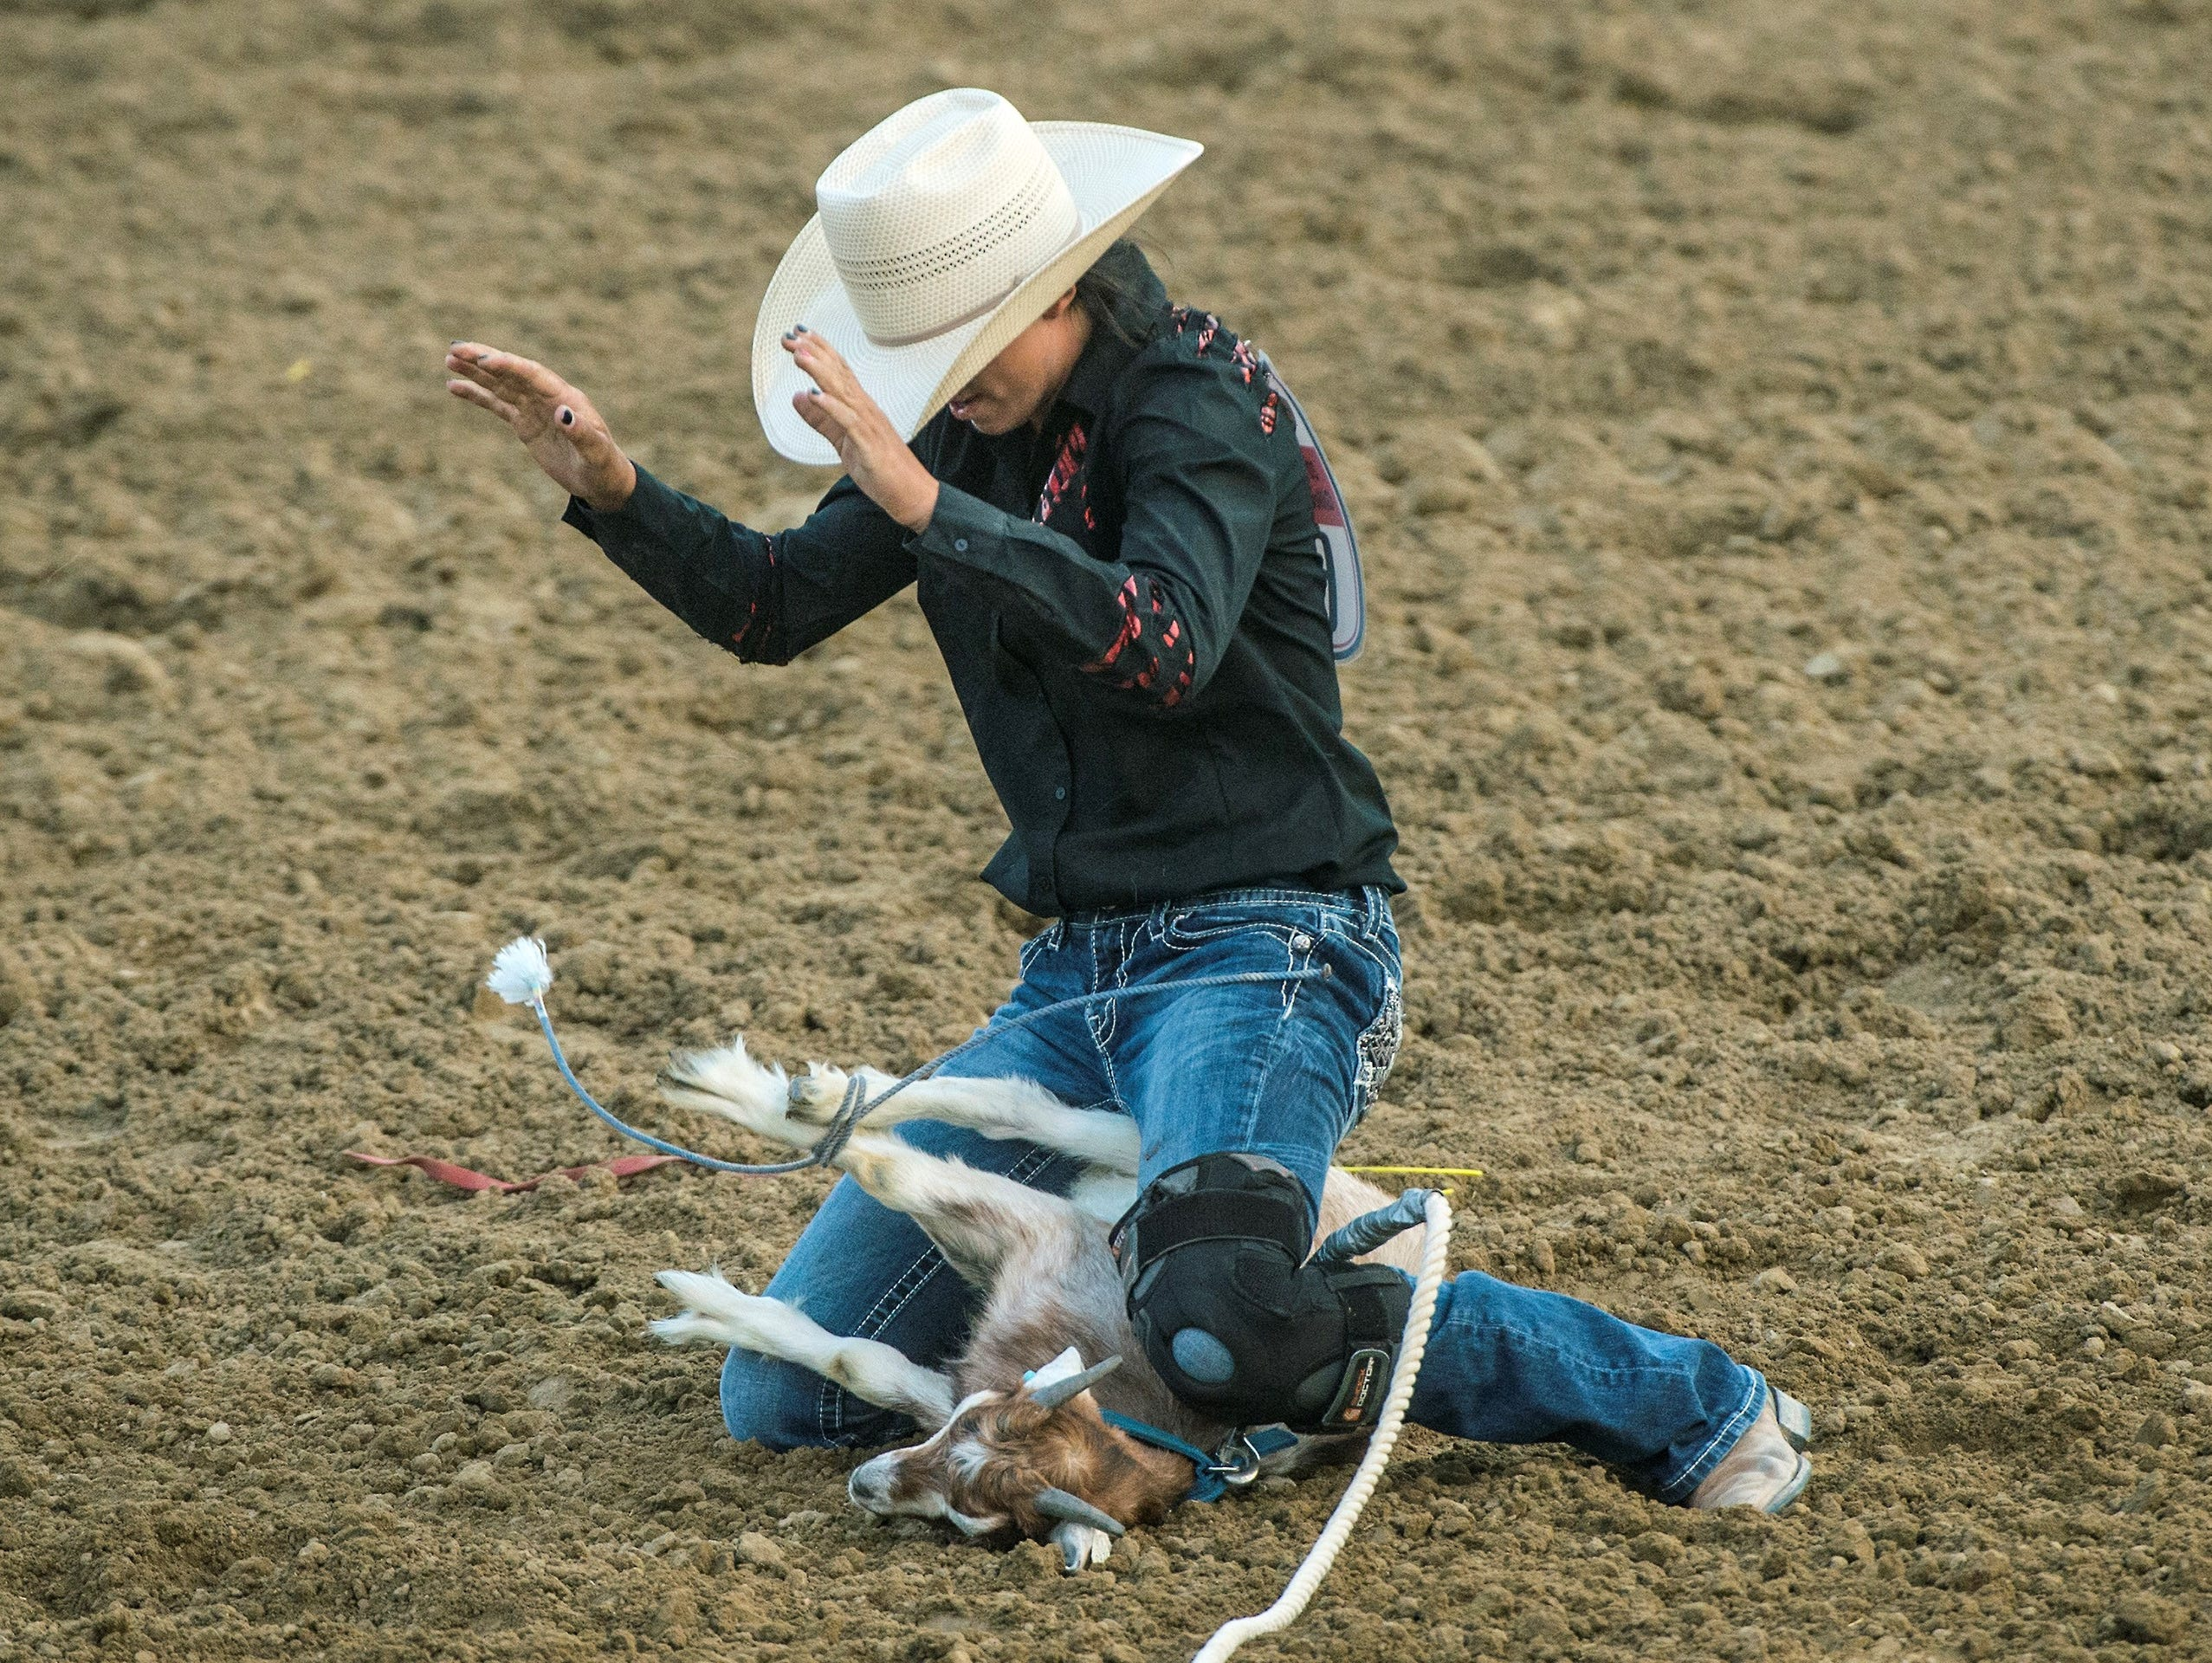 Dammeron Valley cowgirl Kaytlyn Miller won the goat tying championship at last week's National High School Finals Rodeo.